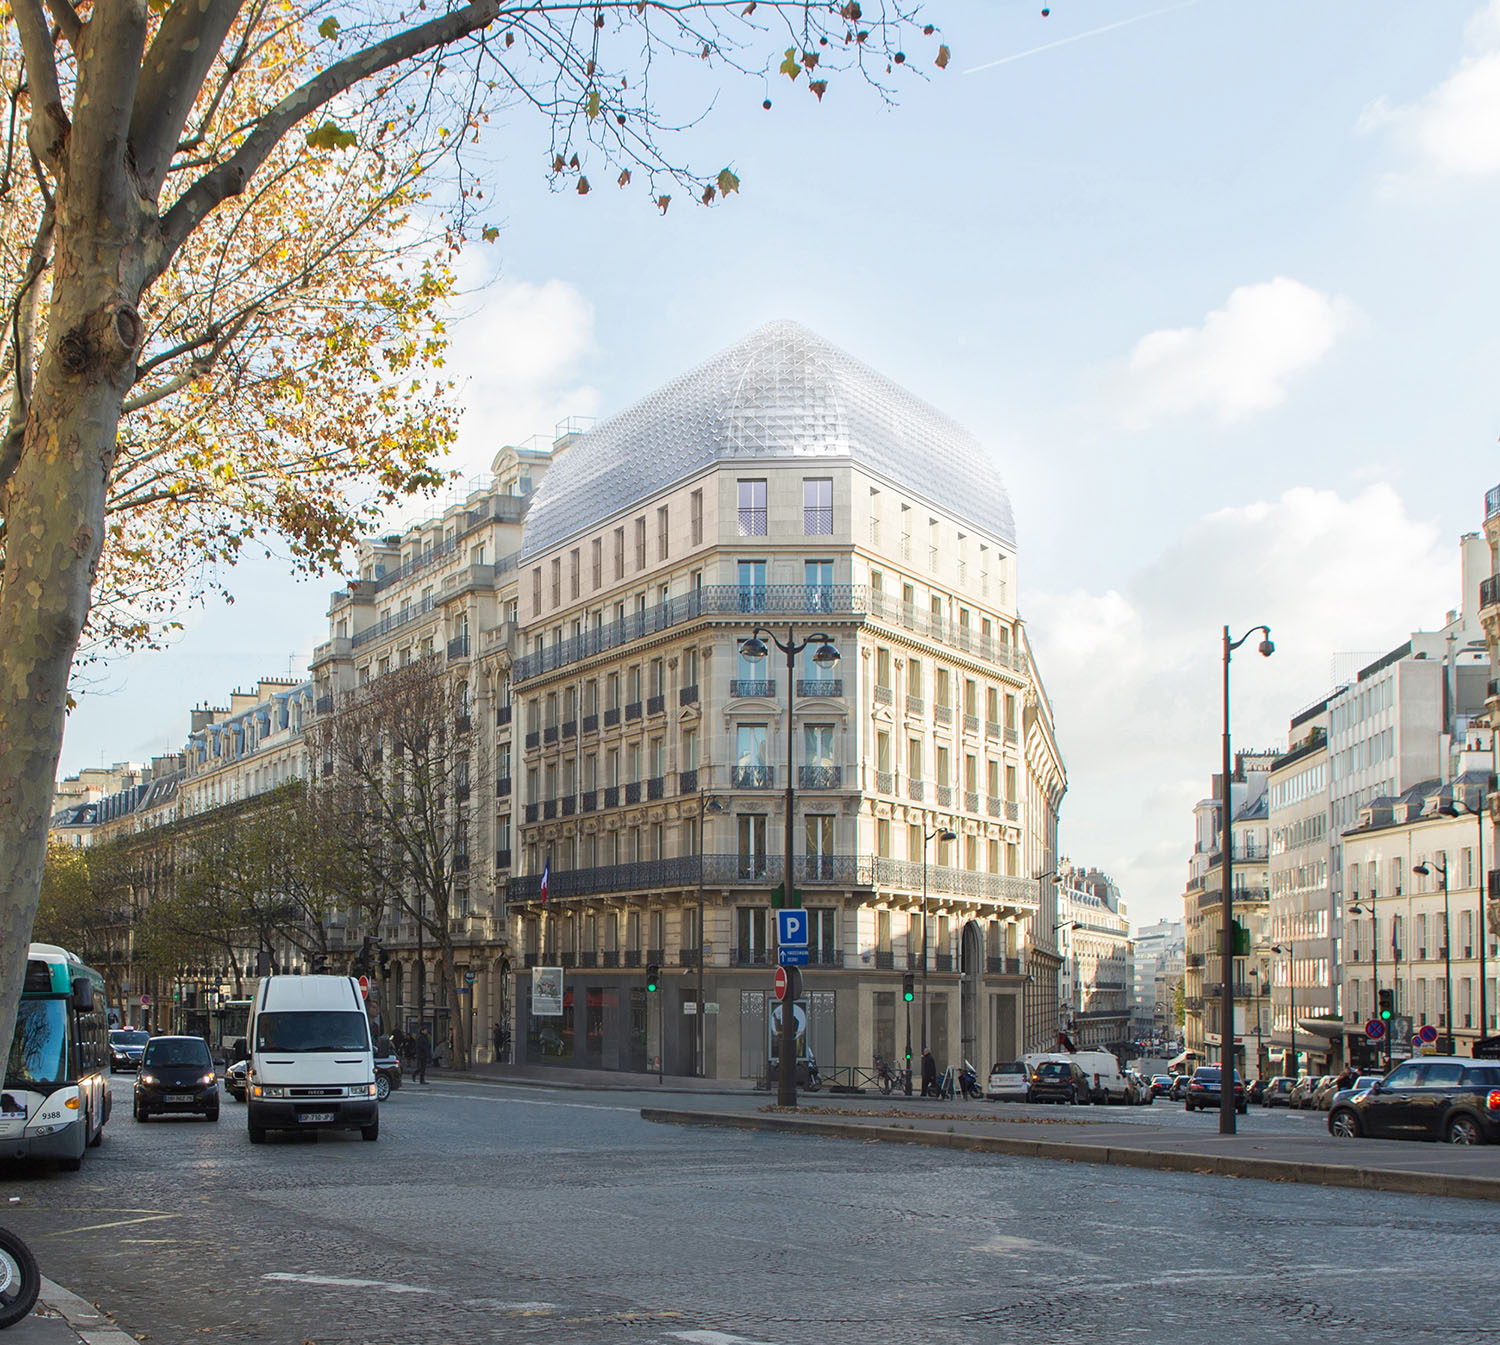 175 Haussmann after its restructuring, from the front view. ©PCA-STREAM}